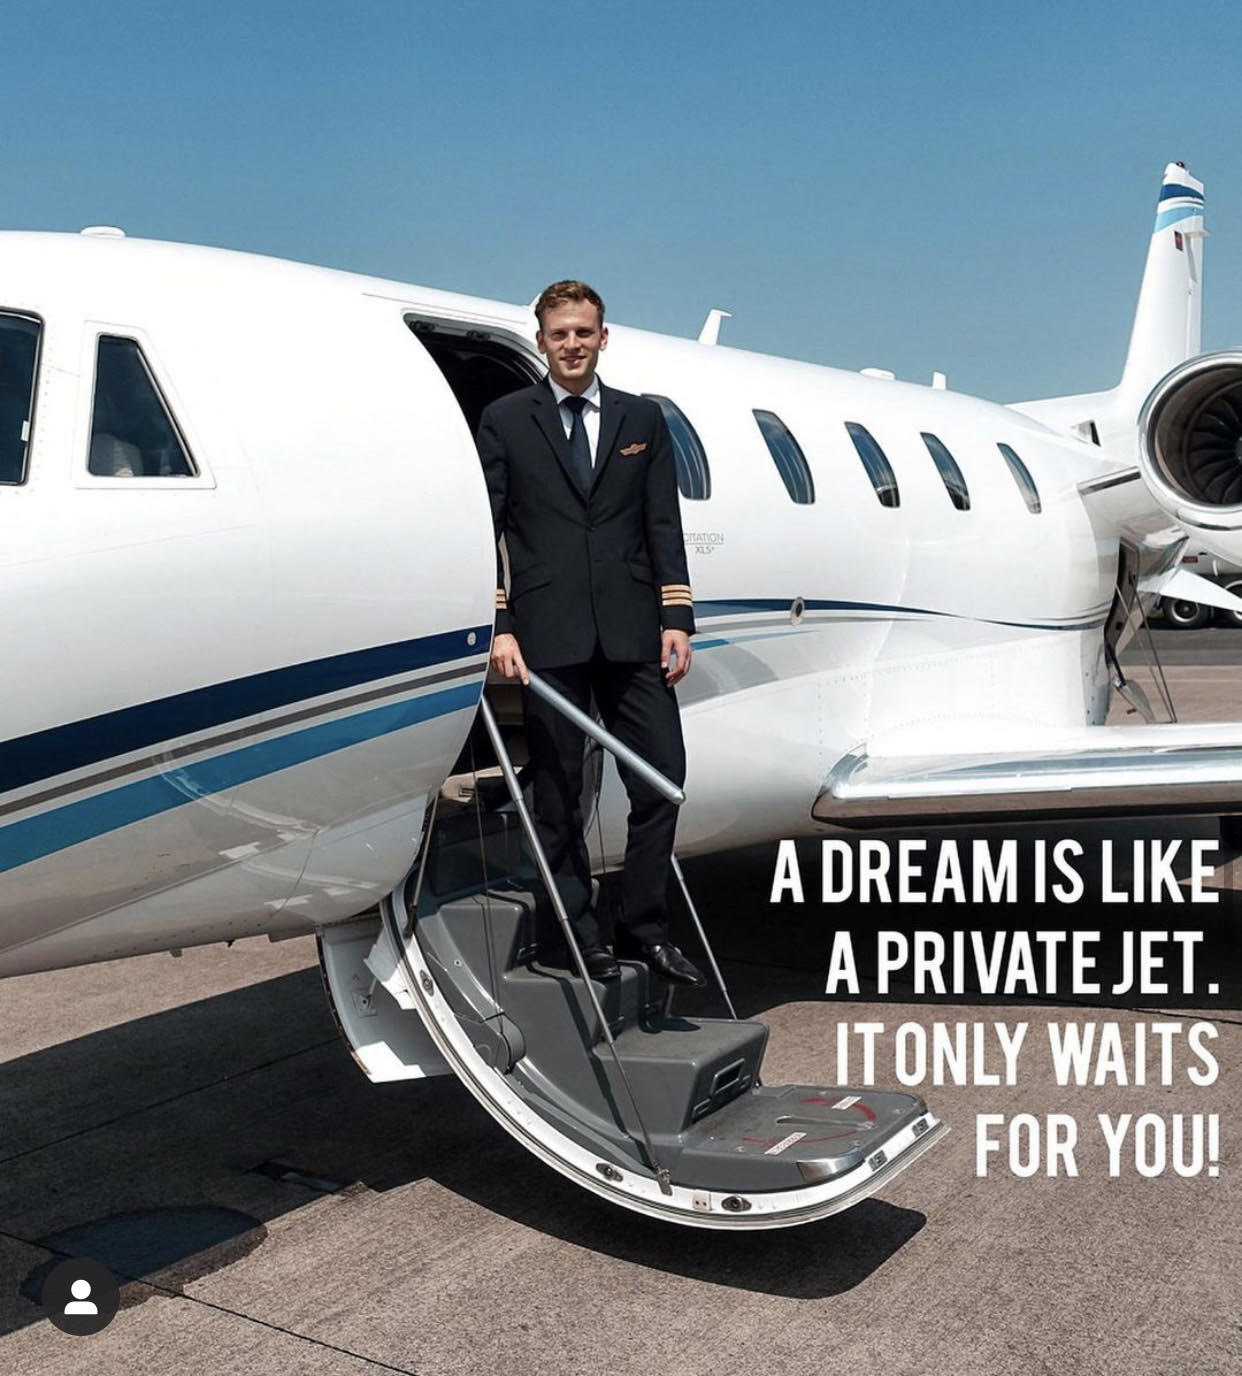 Patrick Biedenkapp: the pilot who invites his followers to fly towards their dreams